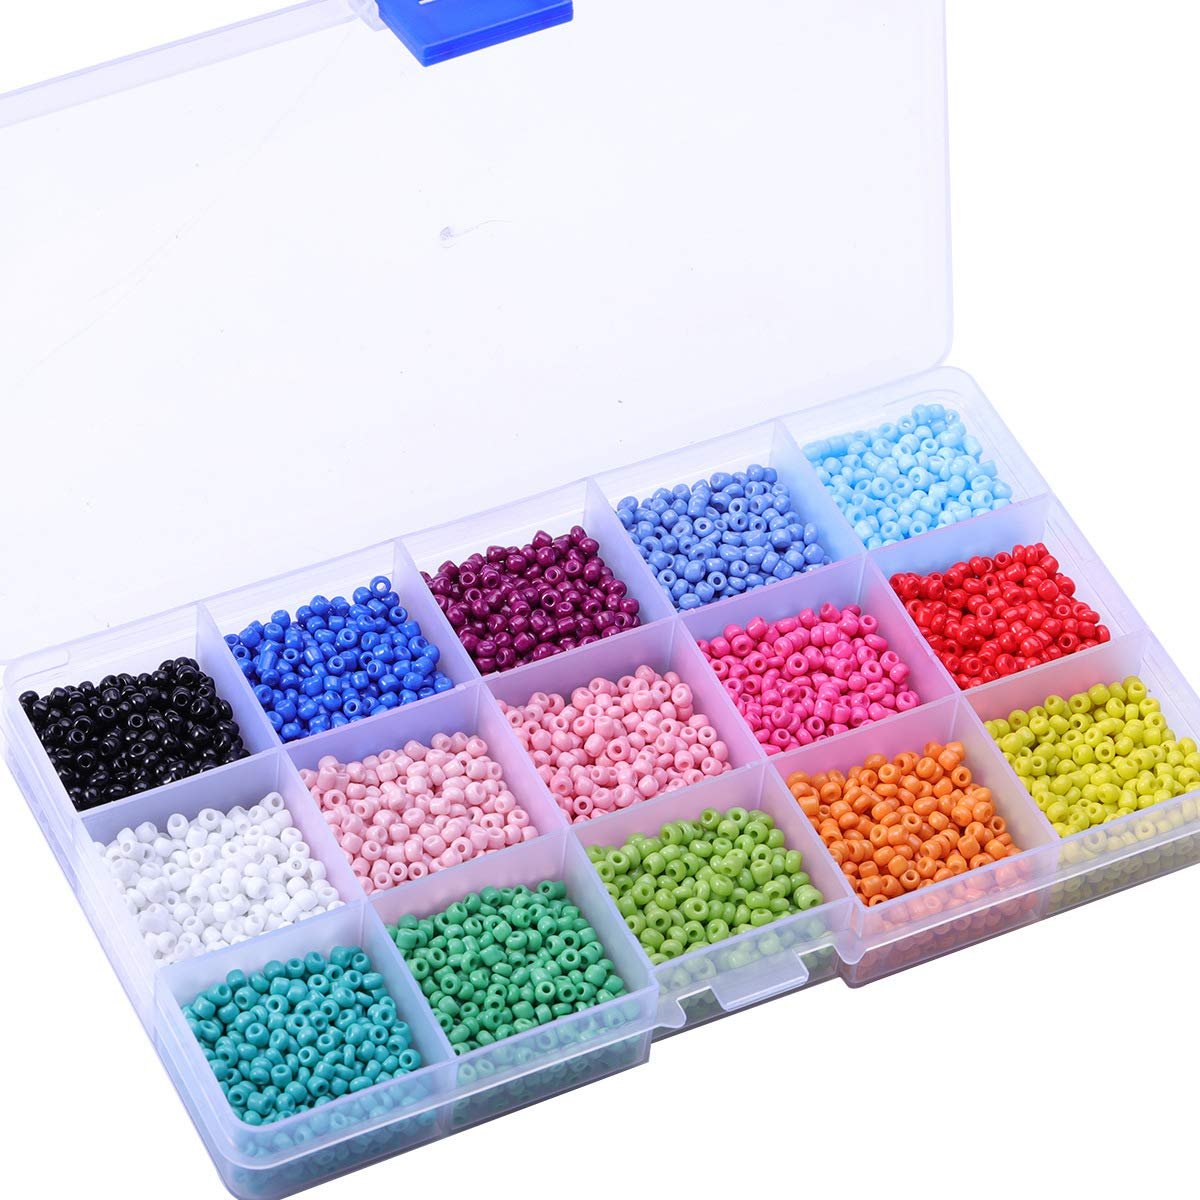 Feb.7 Multicolor Glass Beads Kit with Box for Making Jewelry Necklace Bracelet Gift for Friends Kids